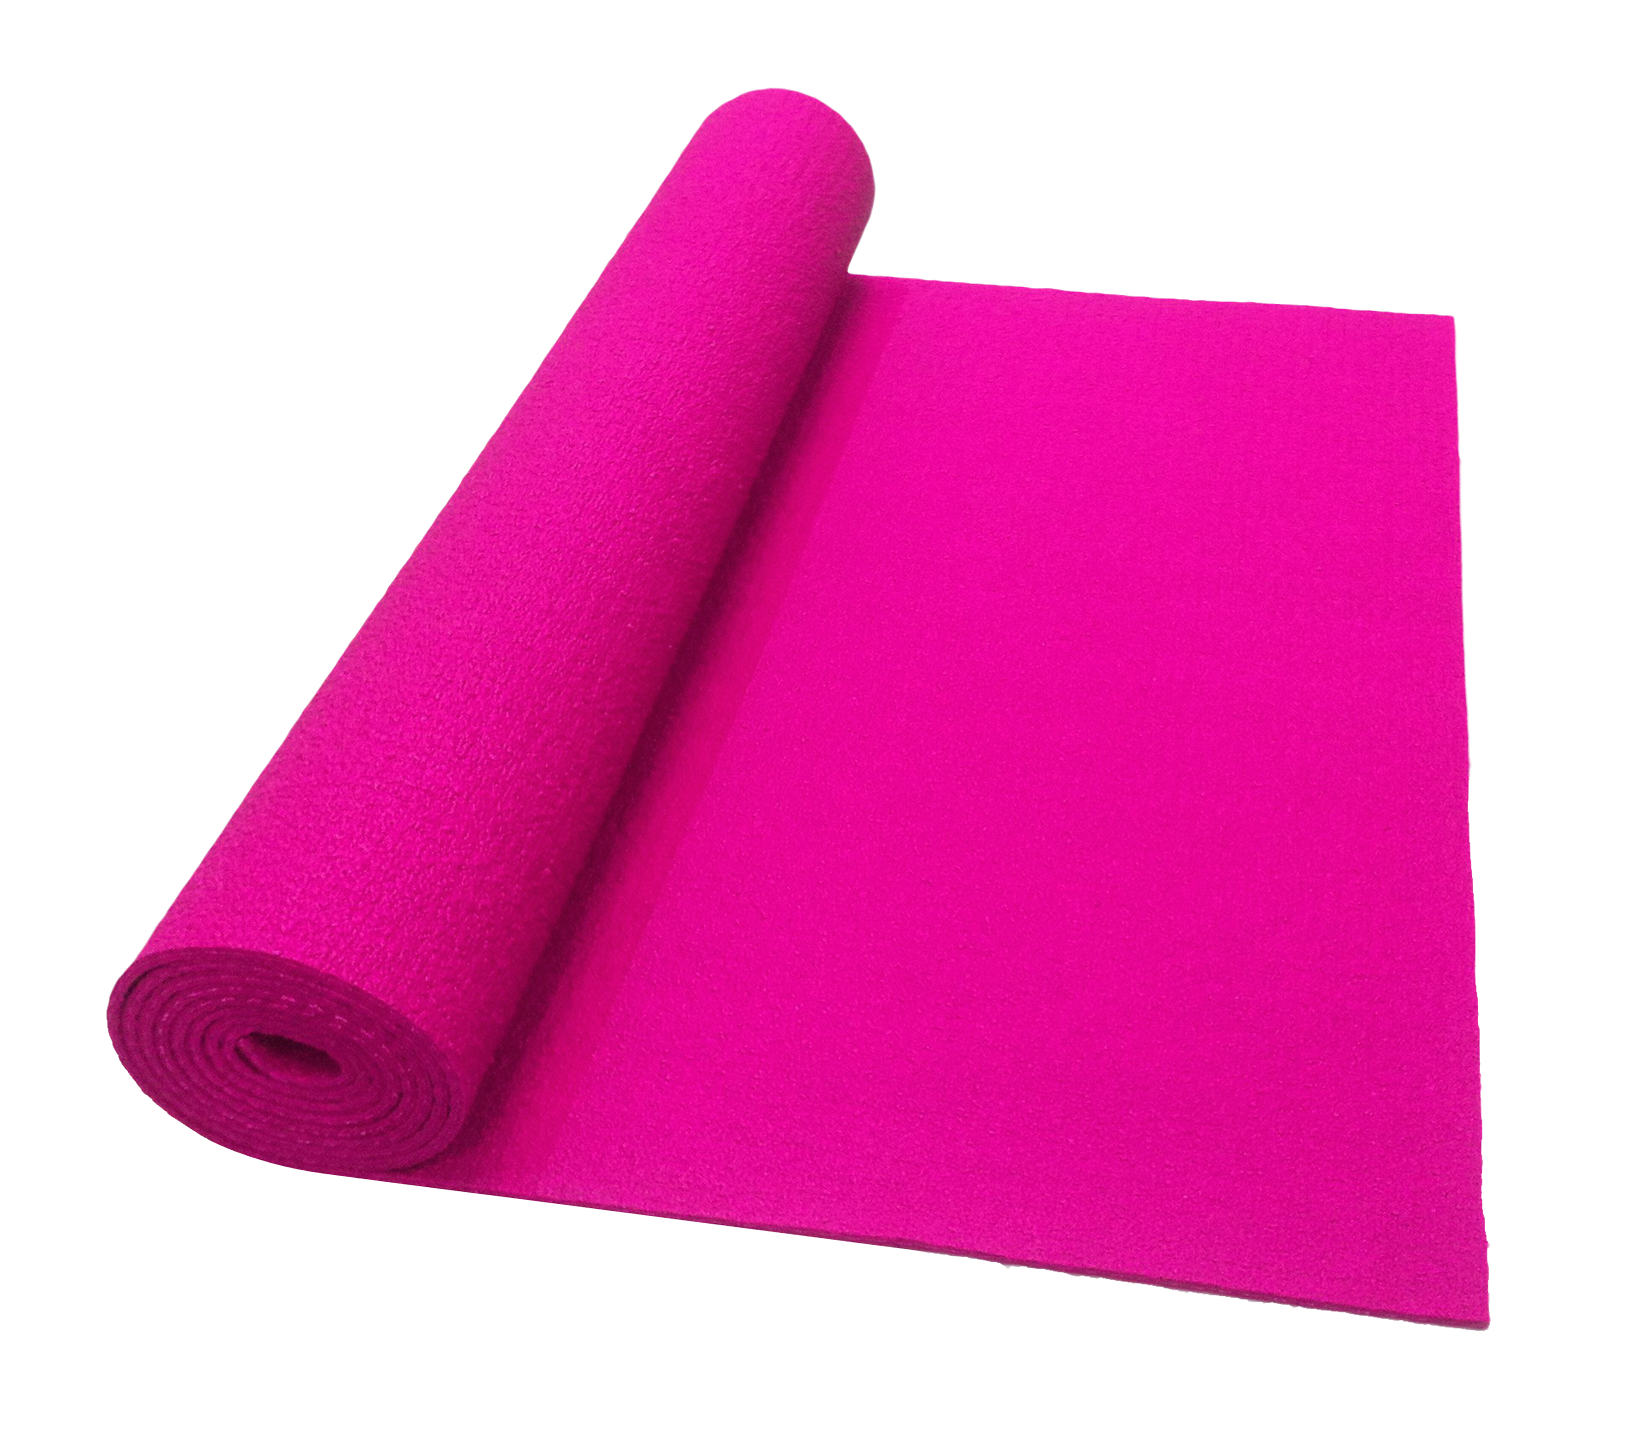 Yoga mat clipart transparent jpg free download Yoga Mat PNG Transparent Image 2 | PNG Transparent best ... jpg free download